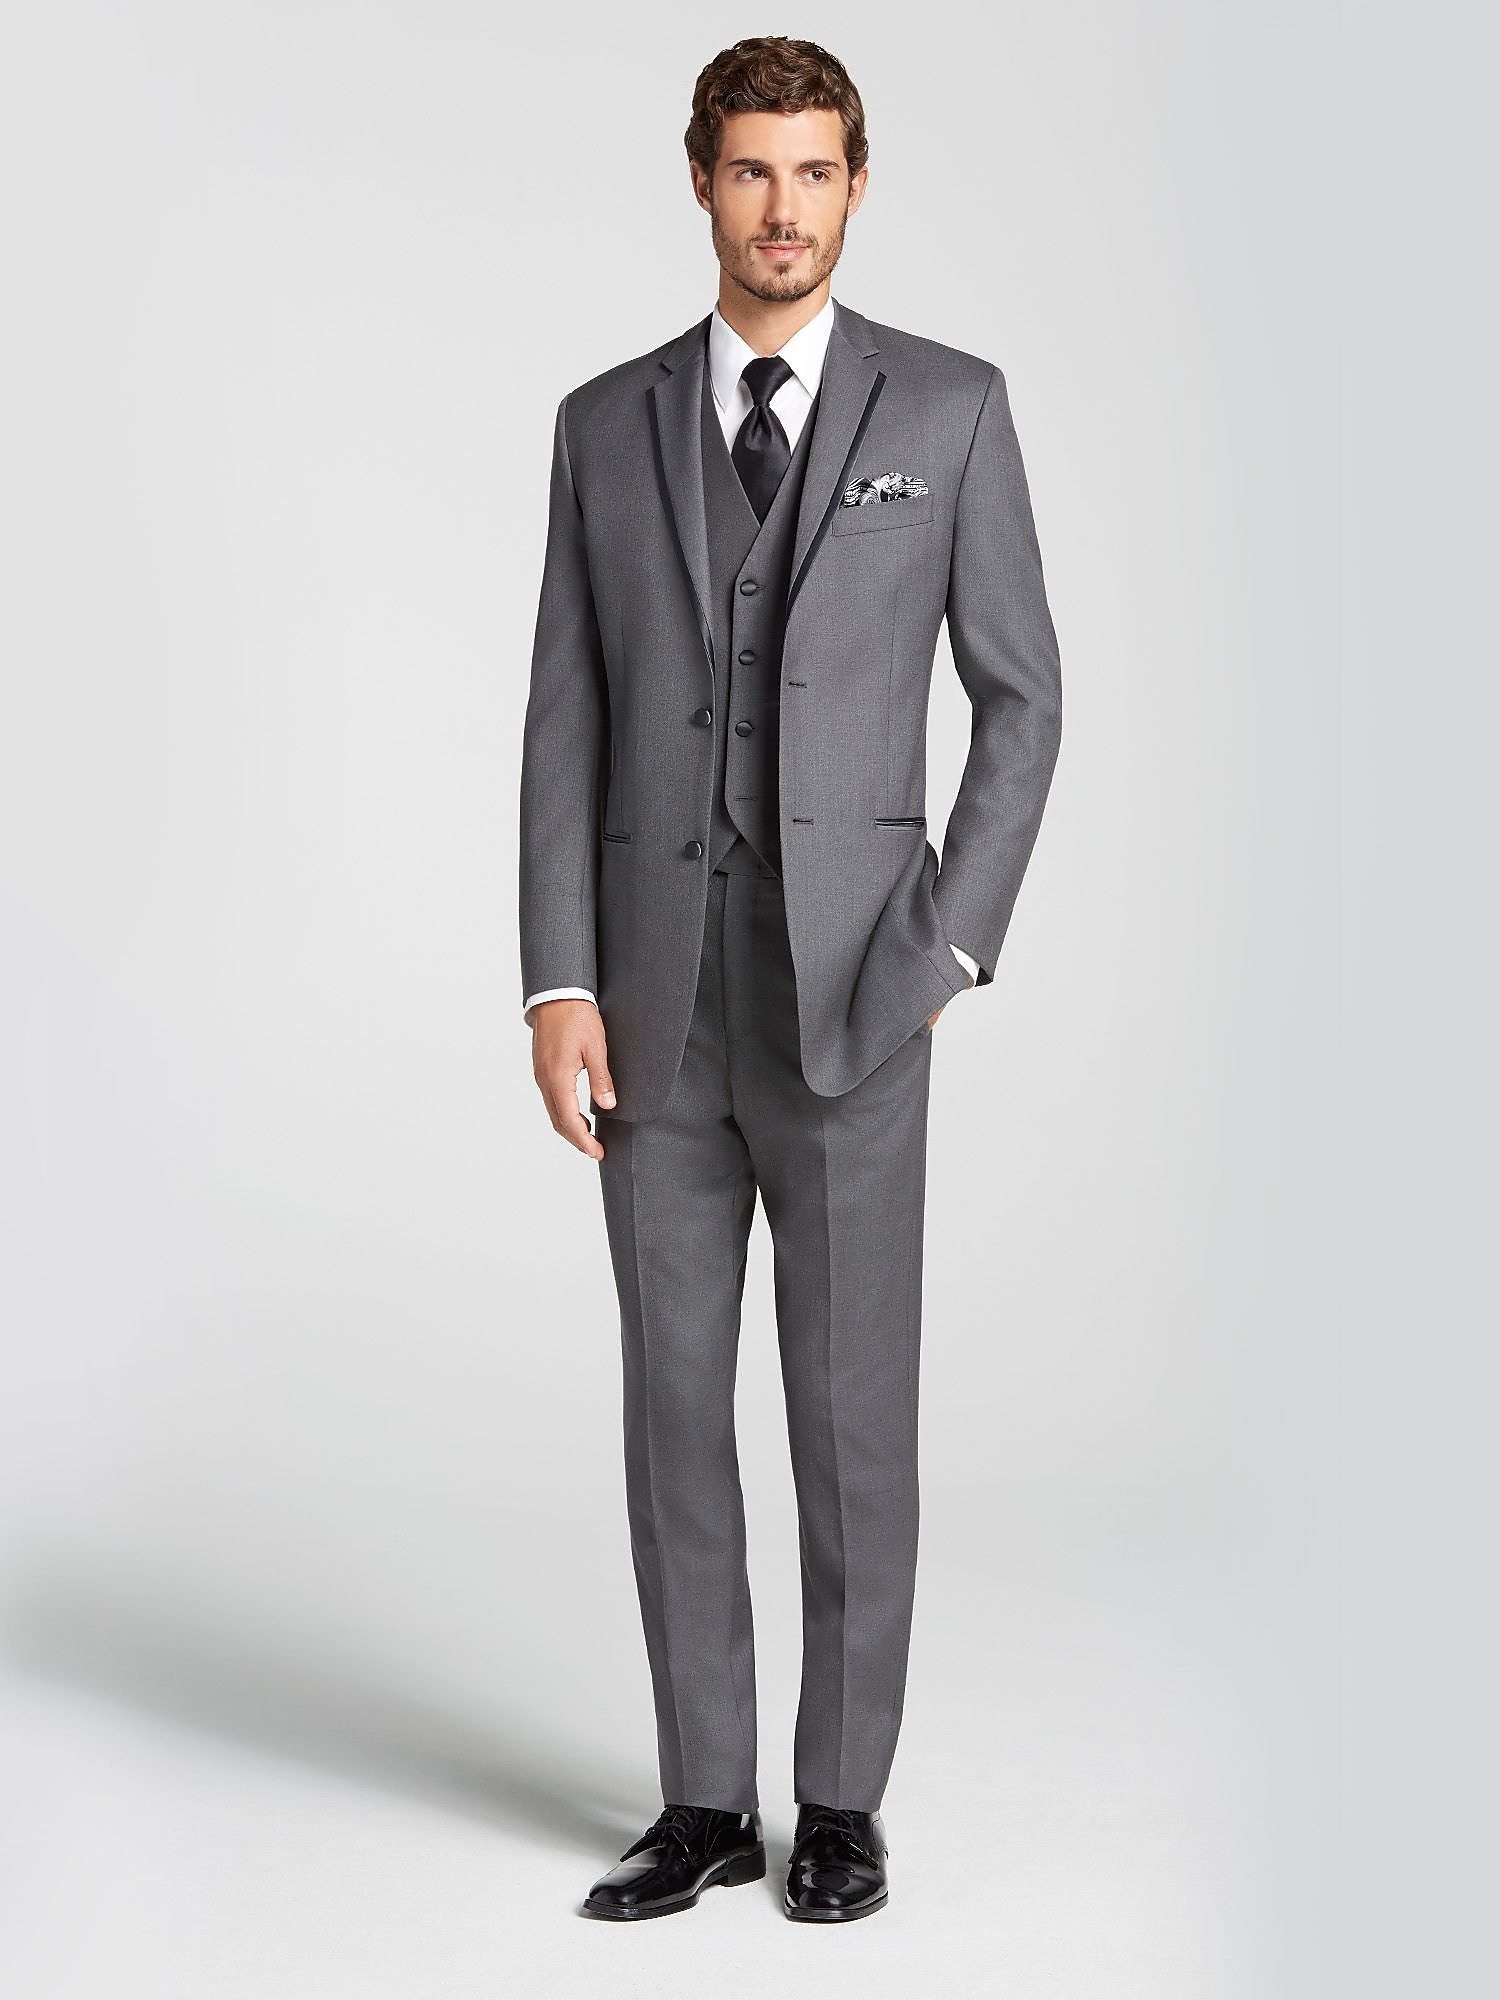 Alexander Wang T By Off- Tailored Suit M/l - This T by Alexander Wang suit is glamorous and chic! It features a single-breasted jacket and pants. It features a single-breasted jacket and pants. The jacket has a lapel collars and long sleeves.